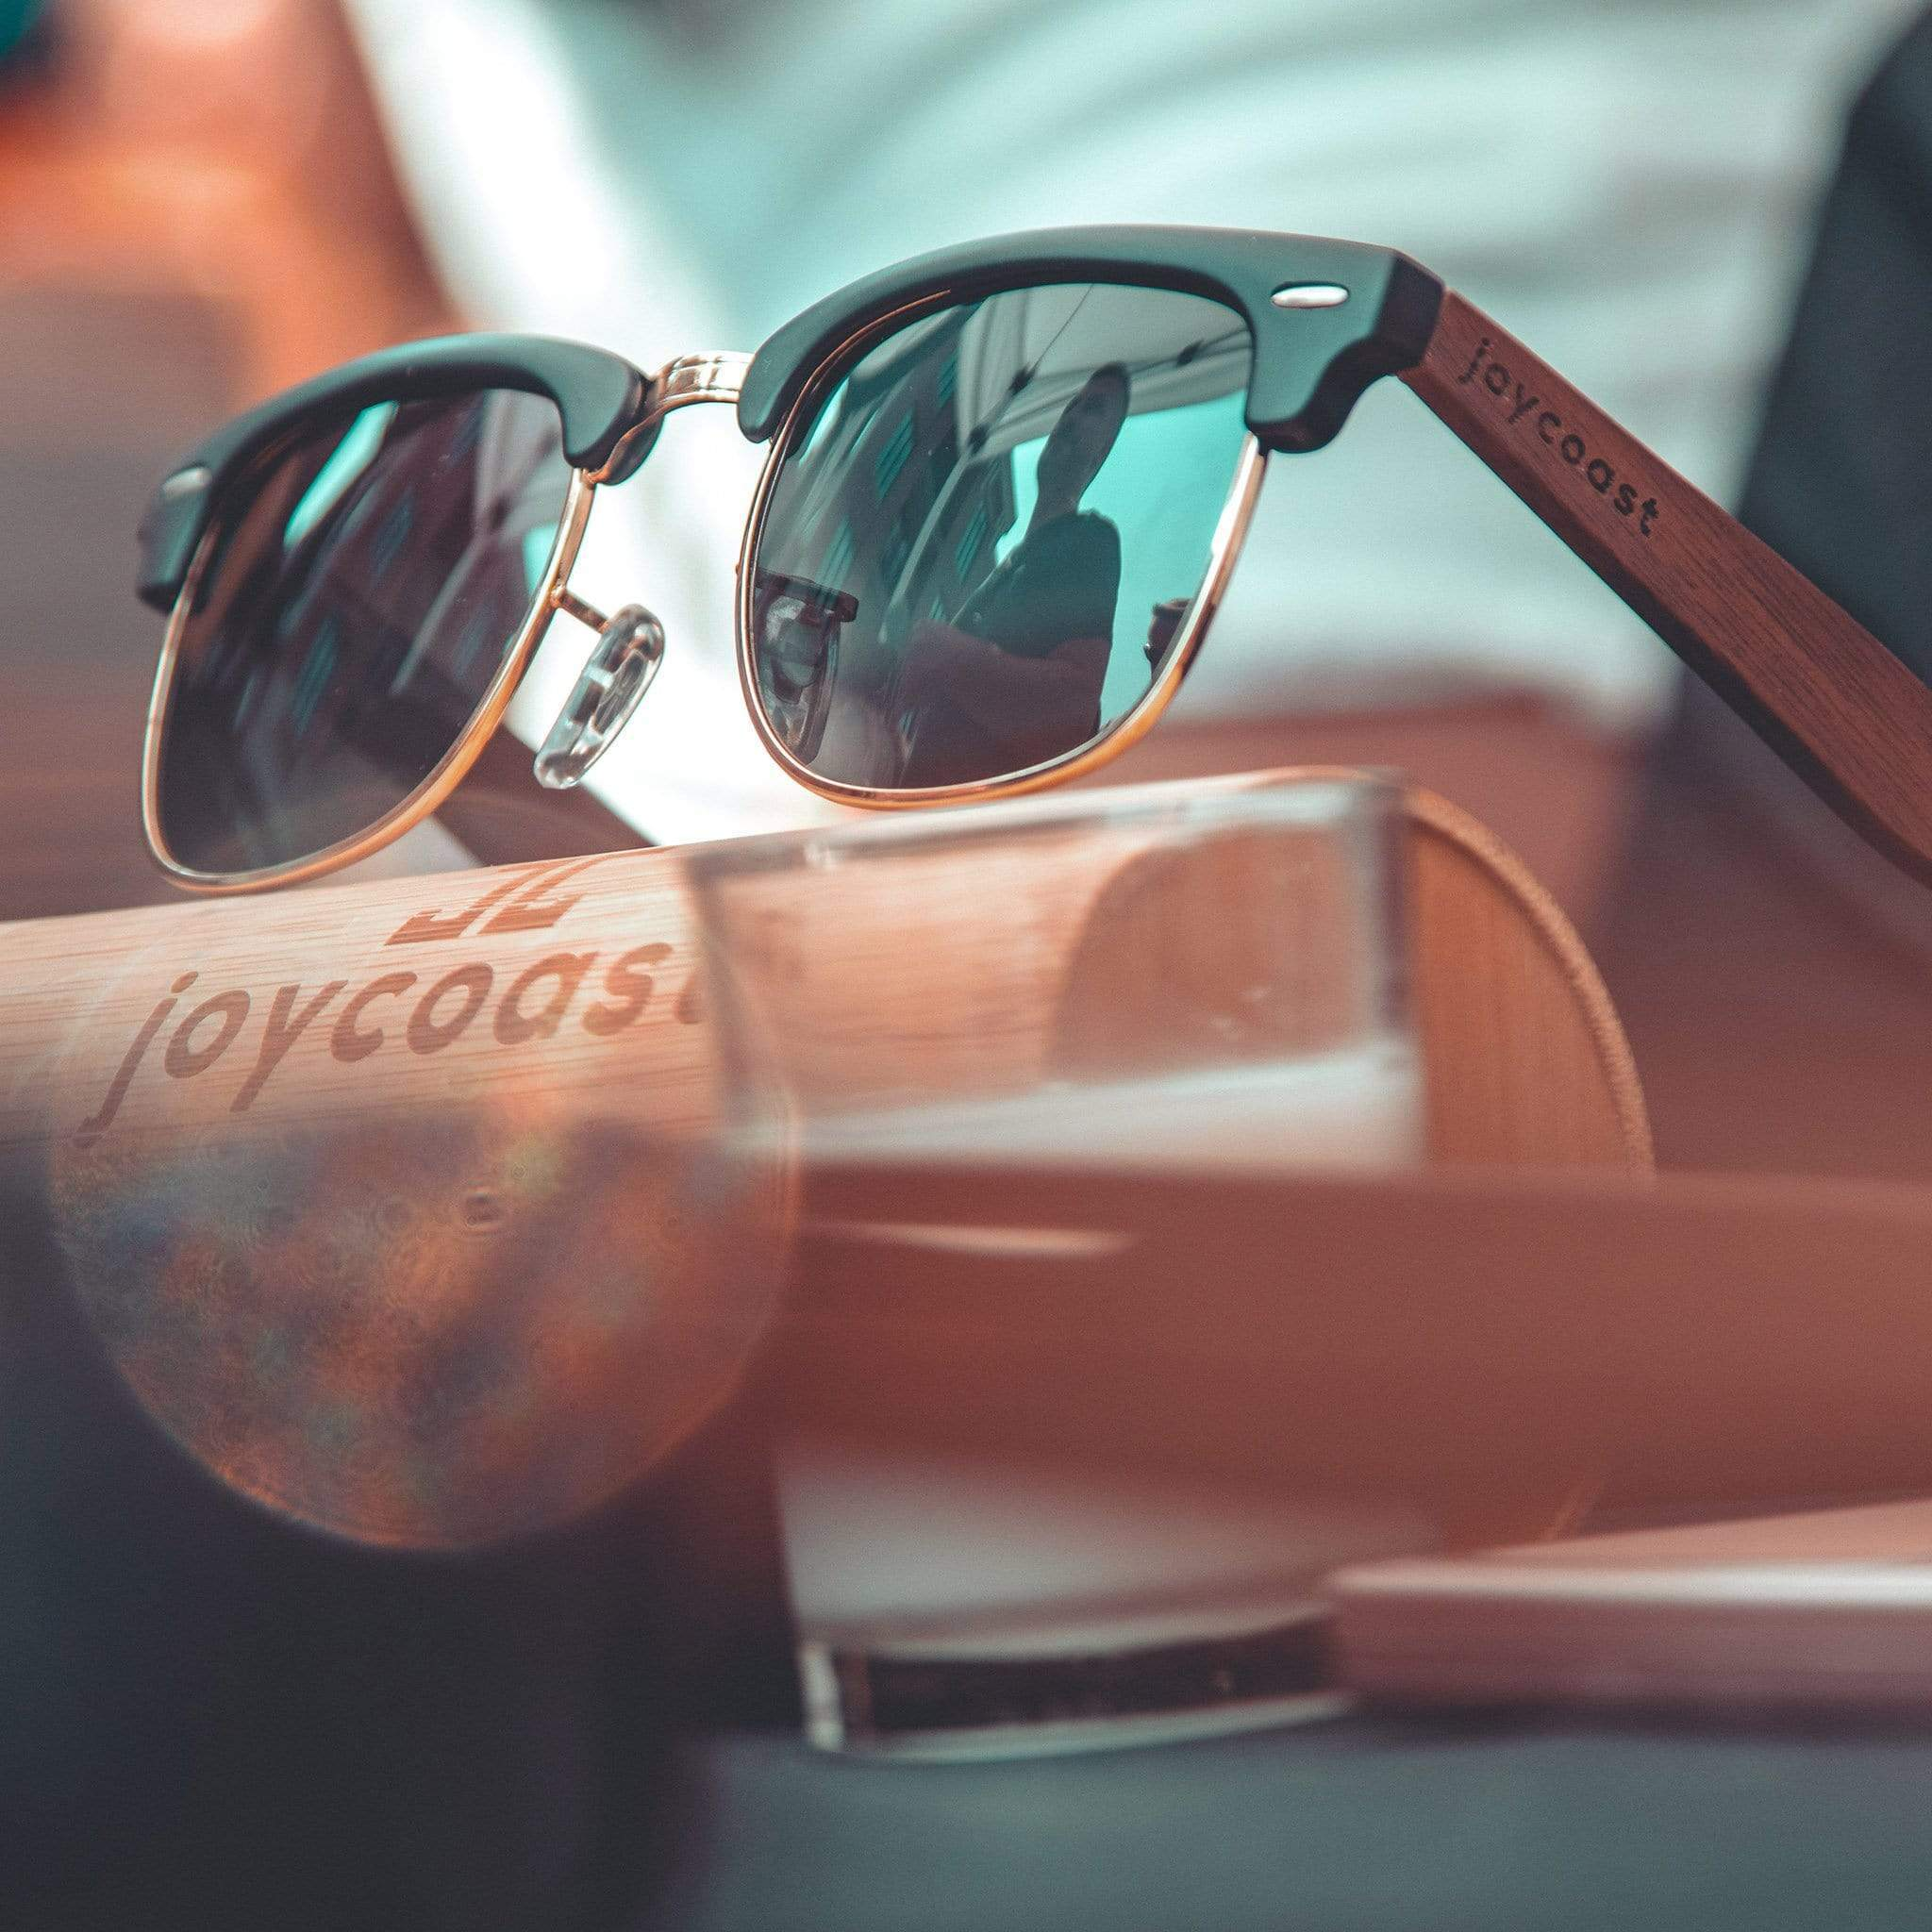 Kennedy - Wooden Watches and Sunglasses - Joycoast